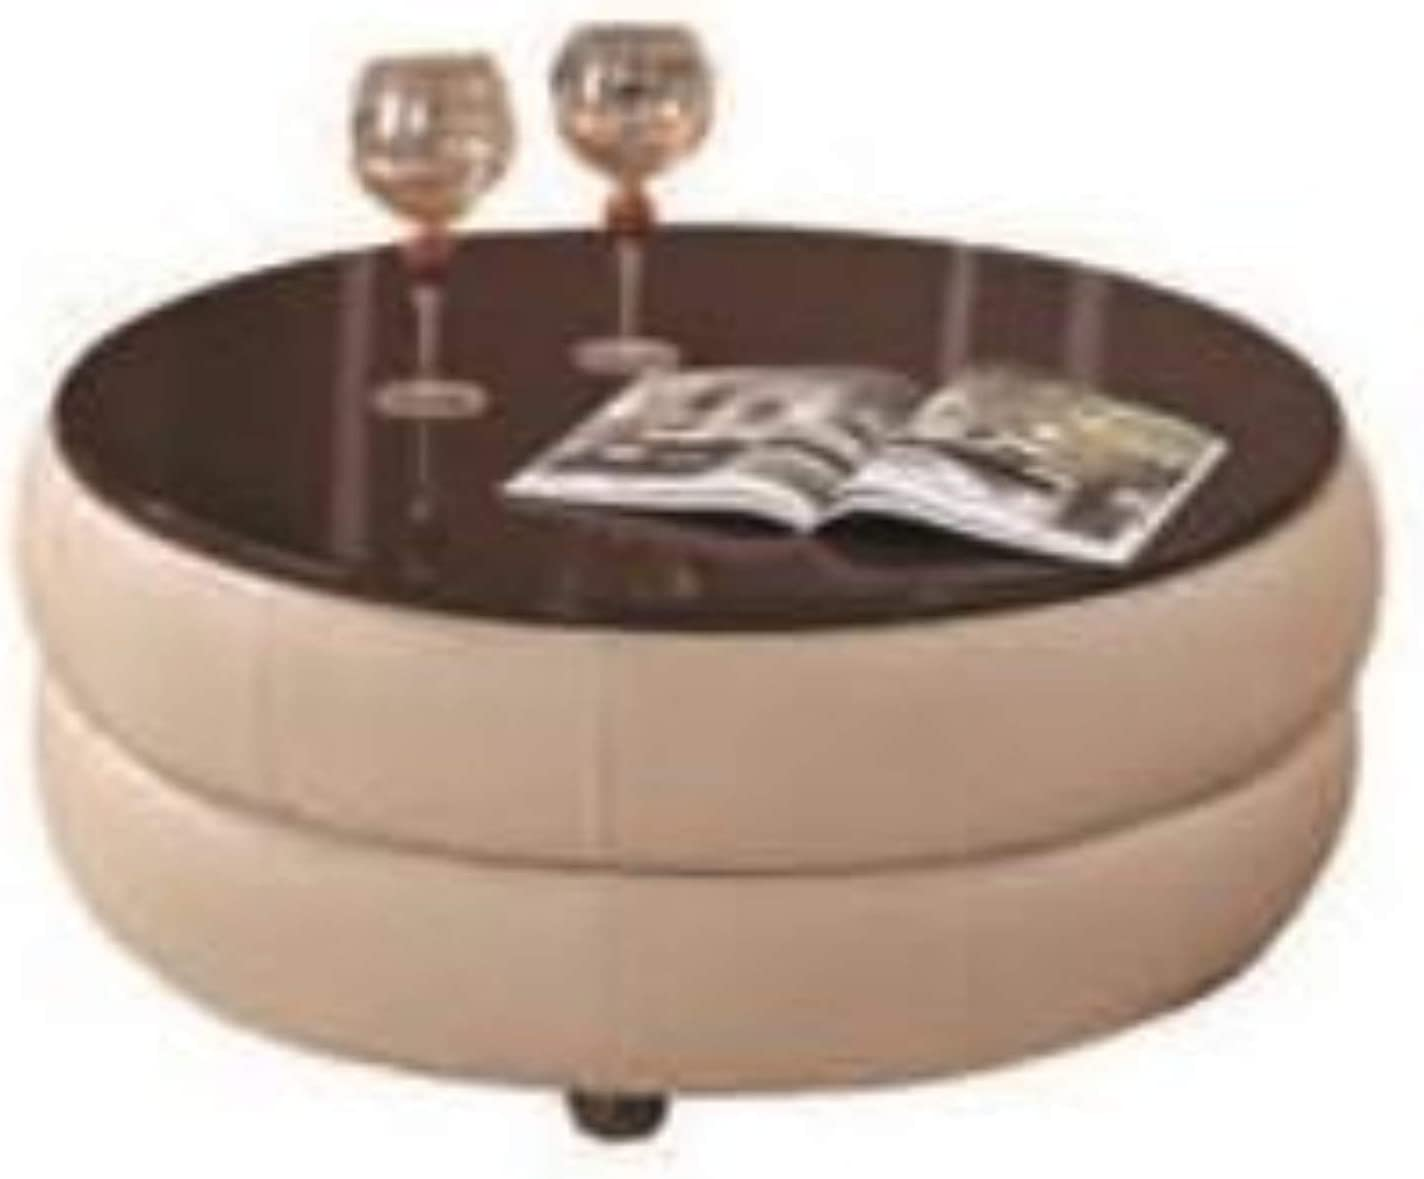 - Amazon.com: My Aashis Round Leather Coffee Table W/Brown Glossy